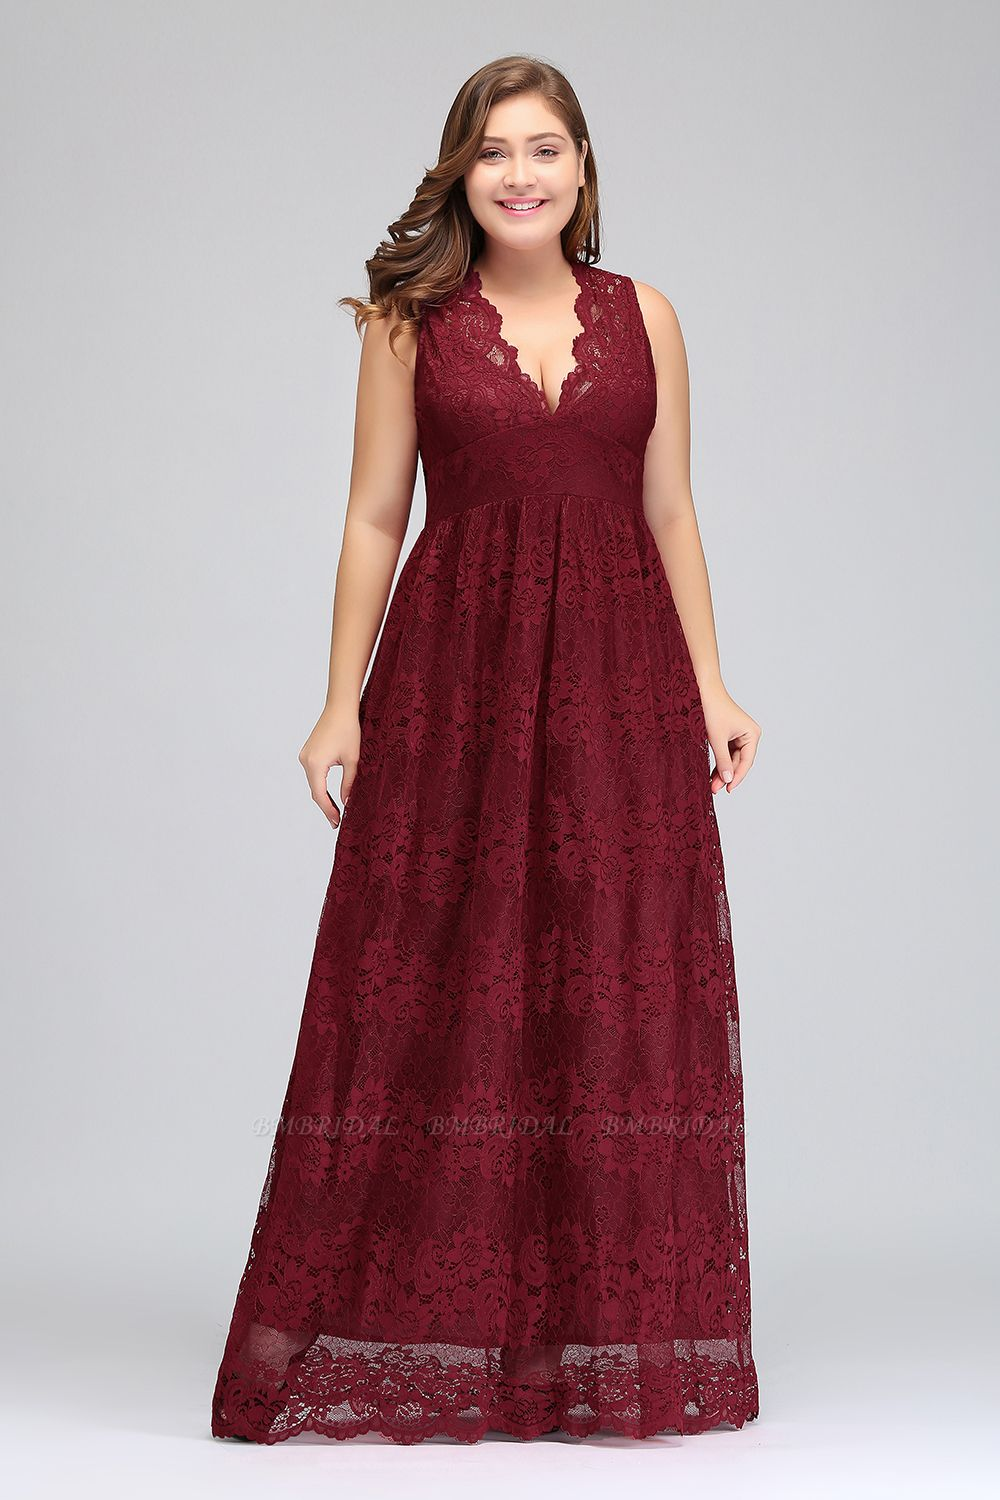 Plus Size A-Line V-Neck Burgundy Lace Bridesmaid Dress Online